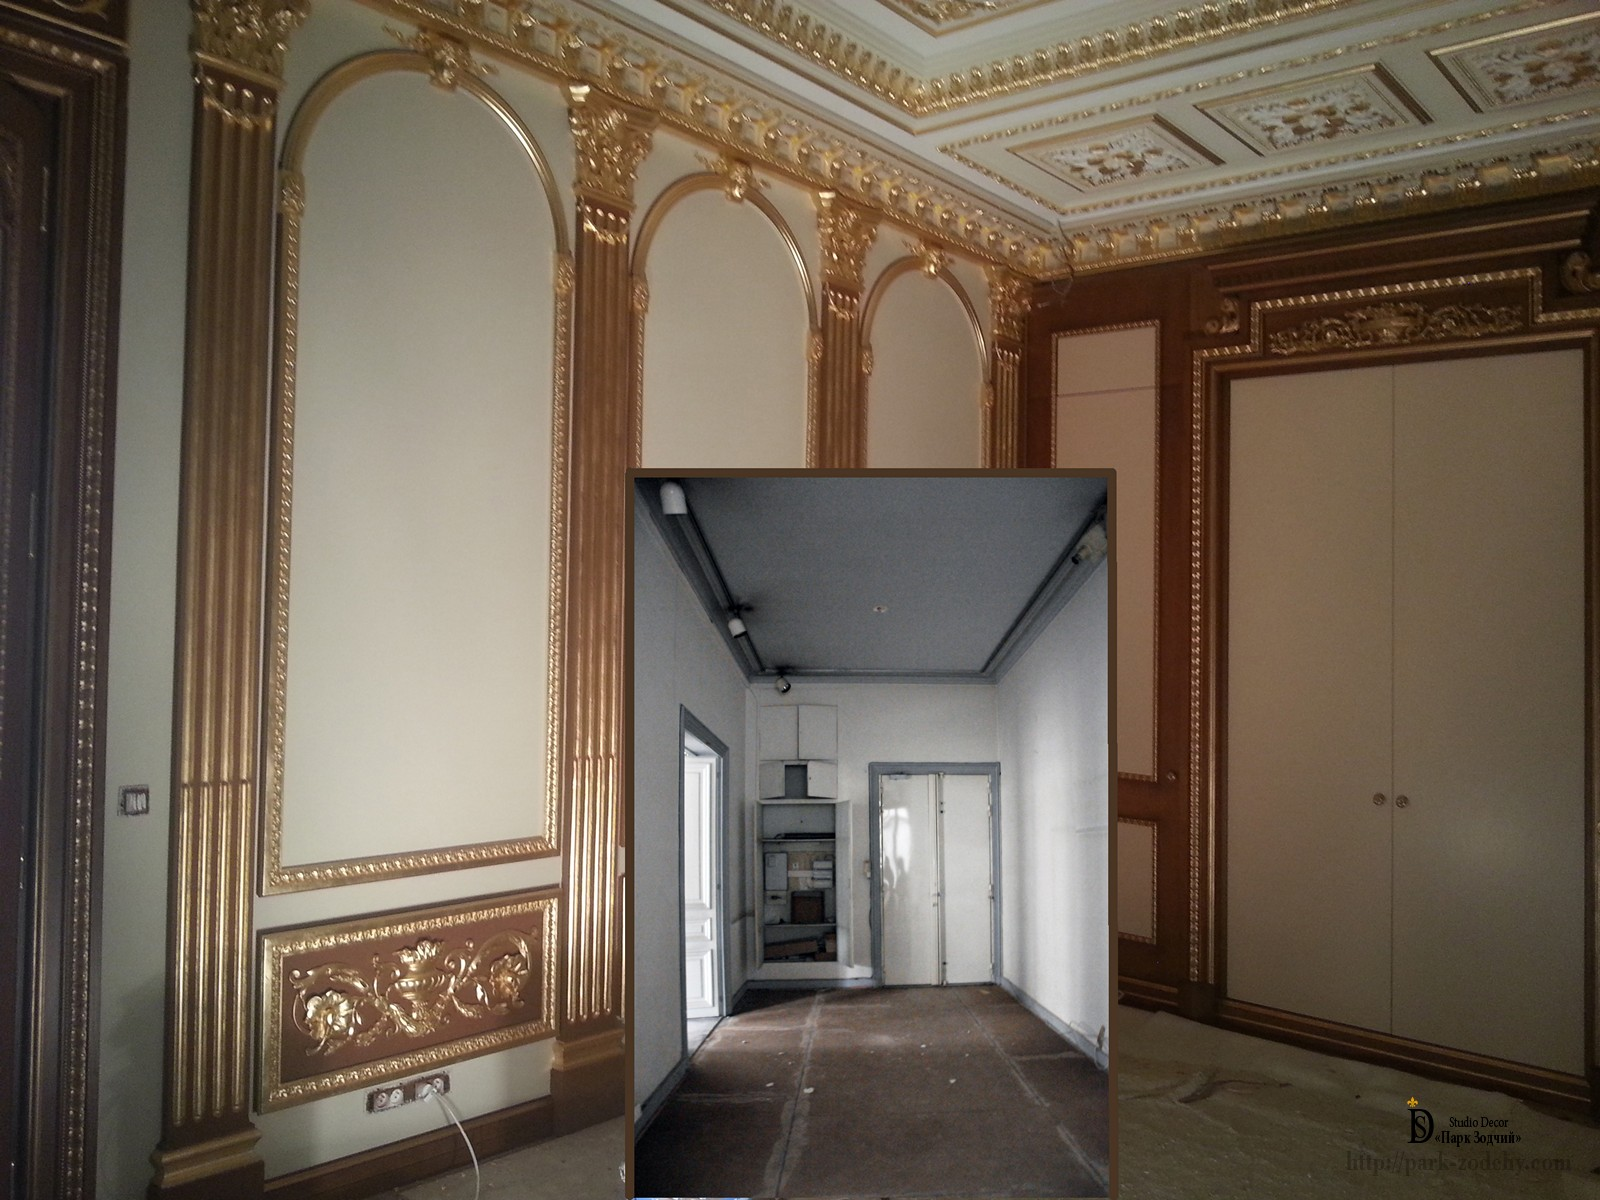 Hall decoration with complex stucco molding